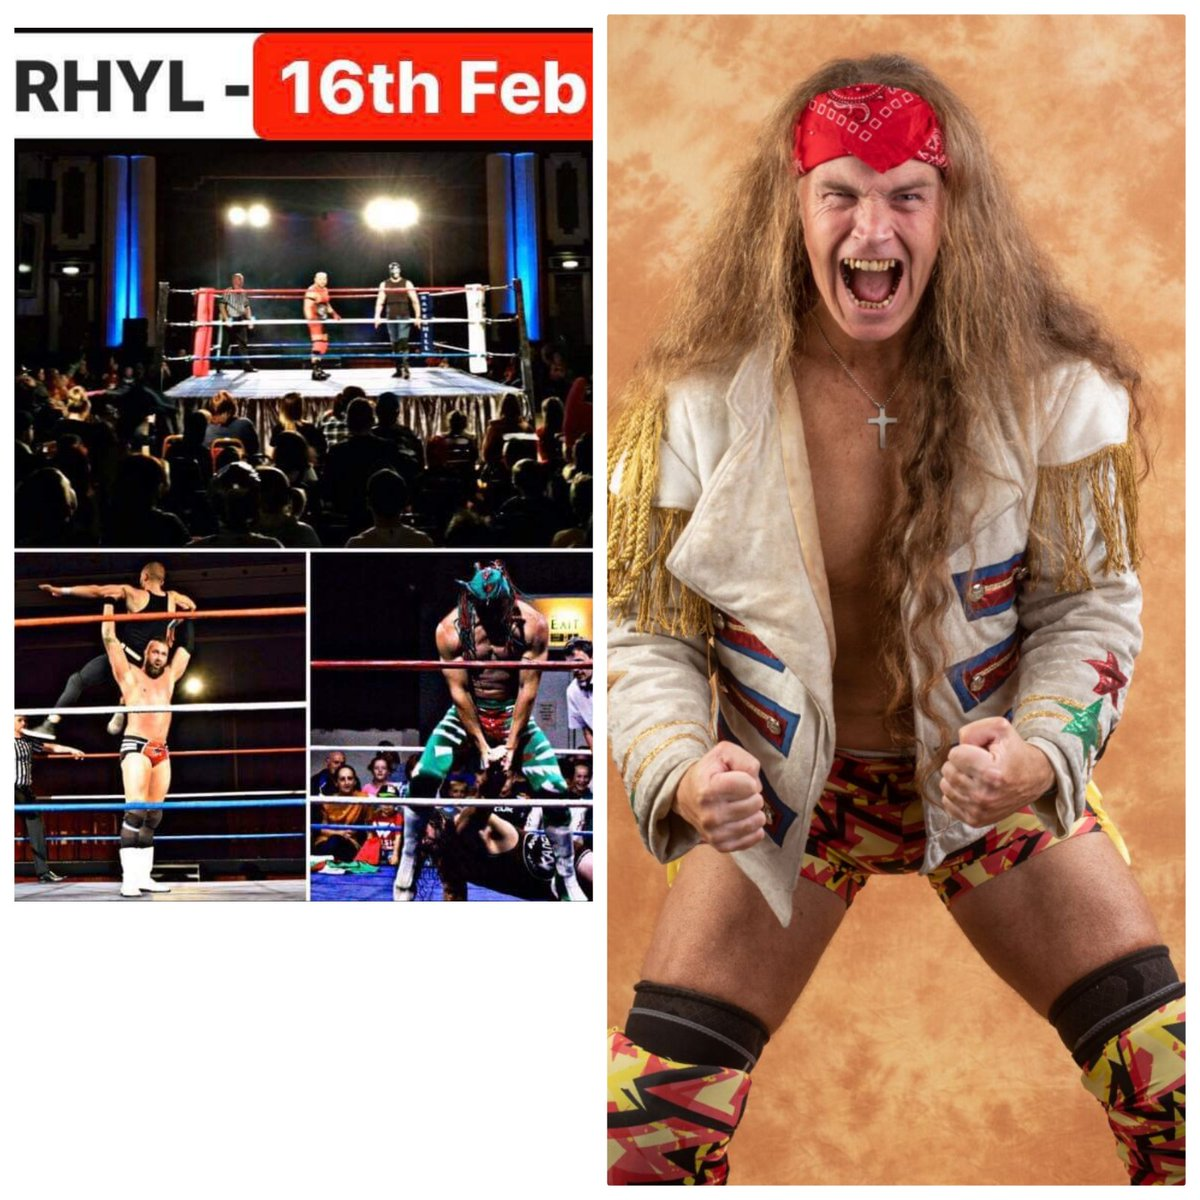 Come see me compete for welsh wrestling at the @RHYLPAVILION sunday 16th feb. Show at 4. I'd love to see you https://t.co/b6DKohFpm5